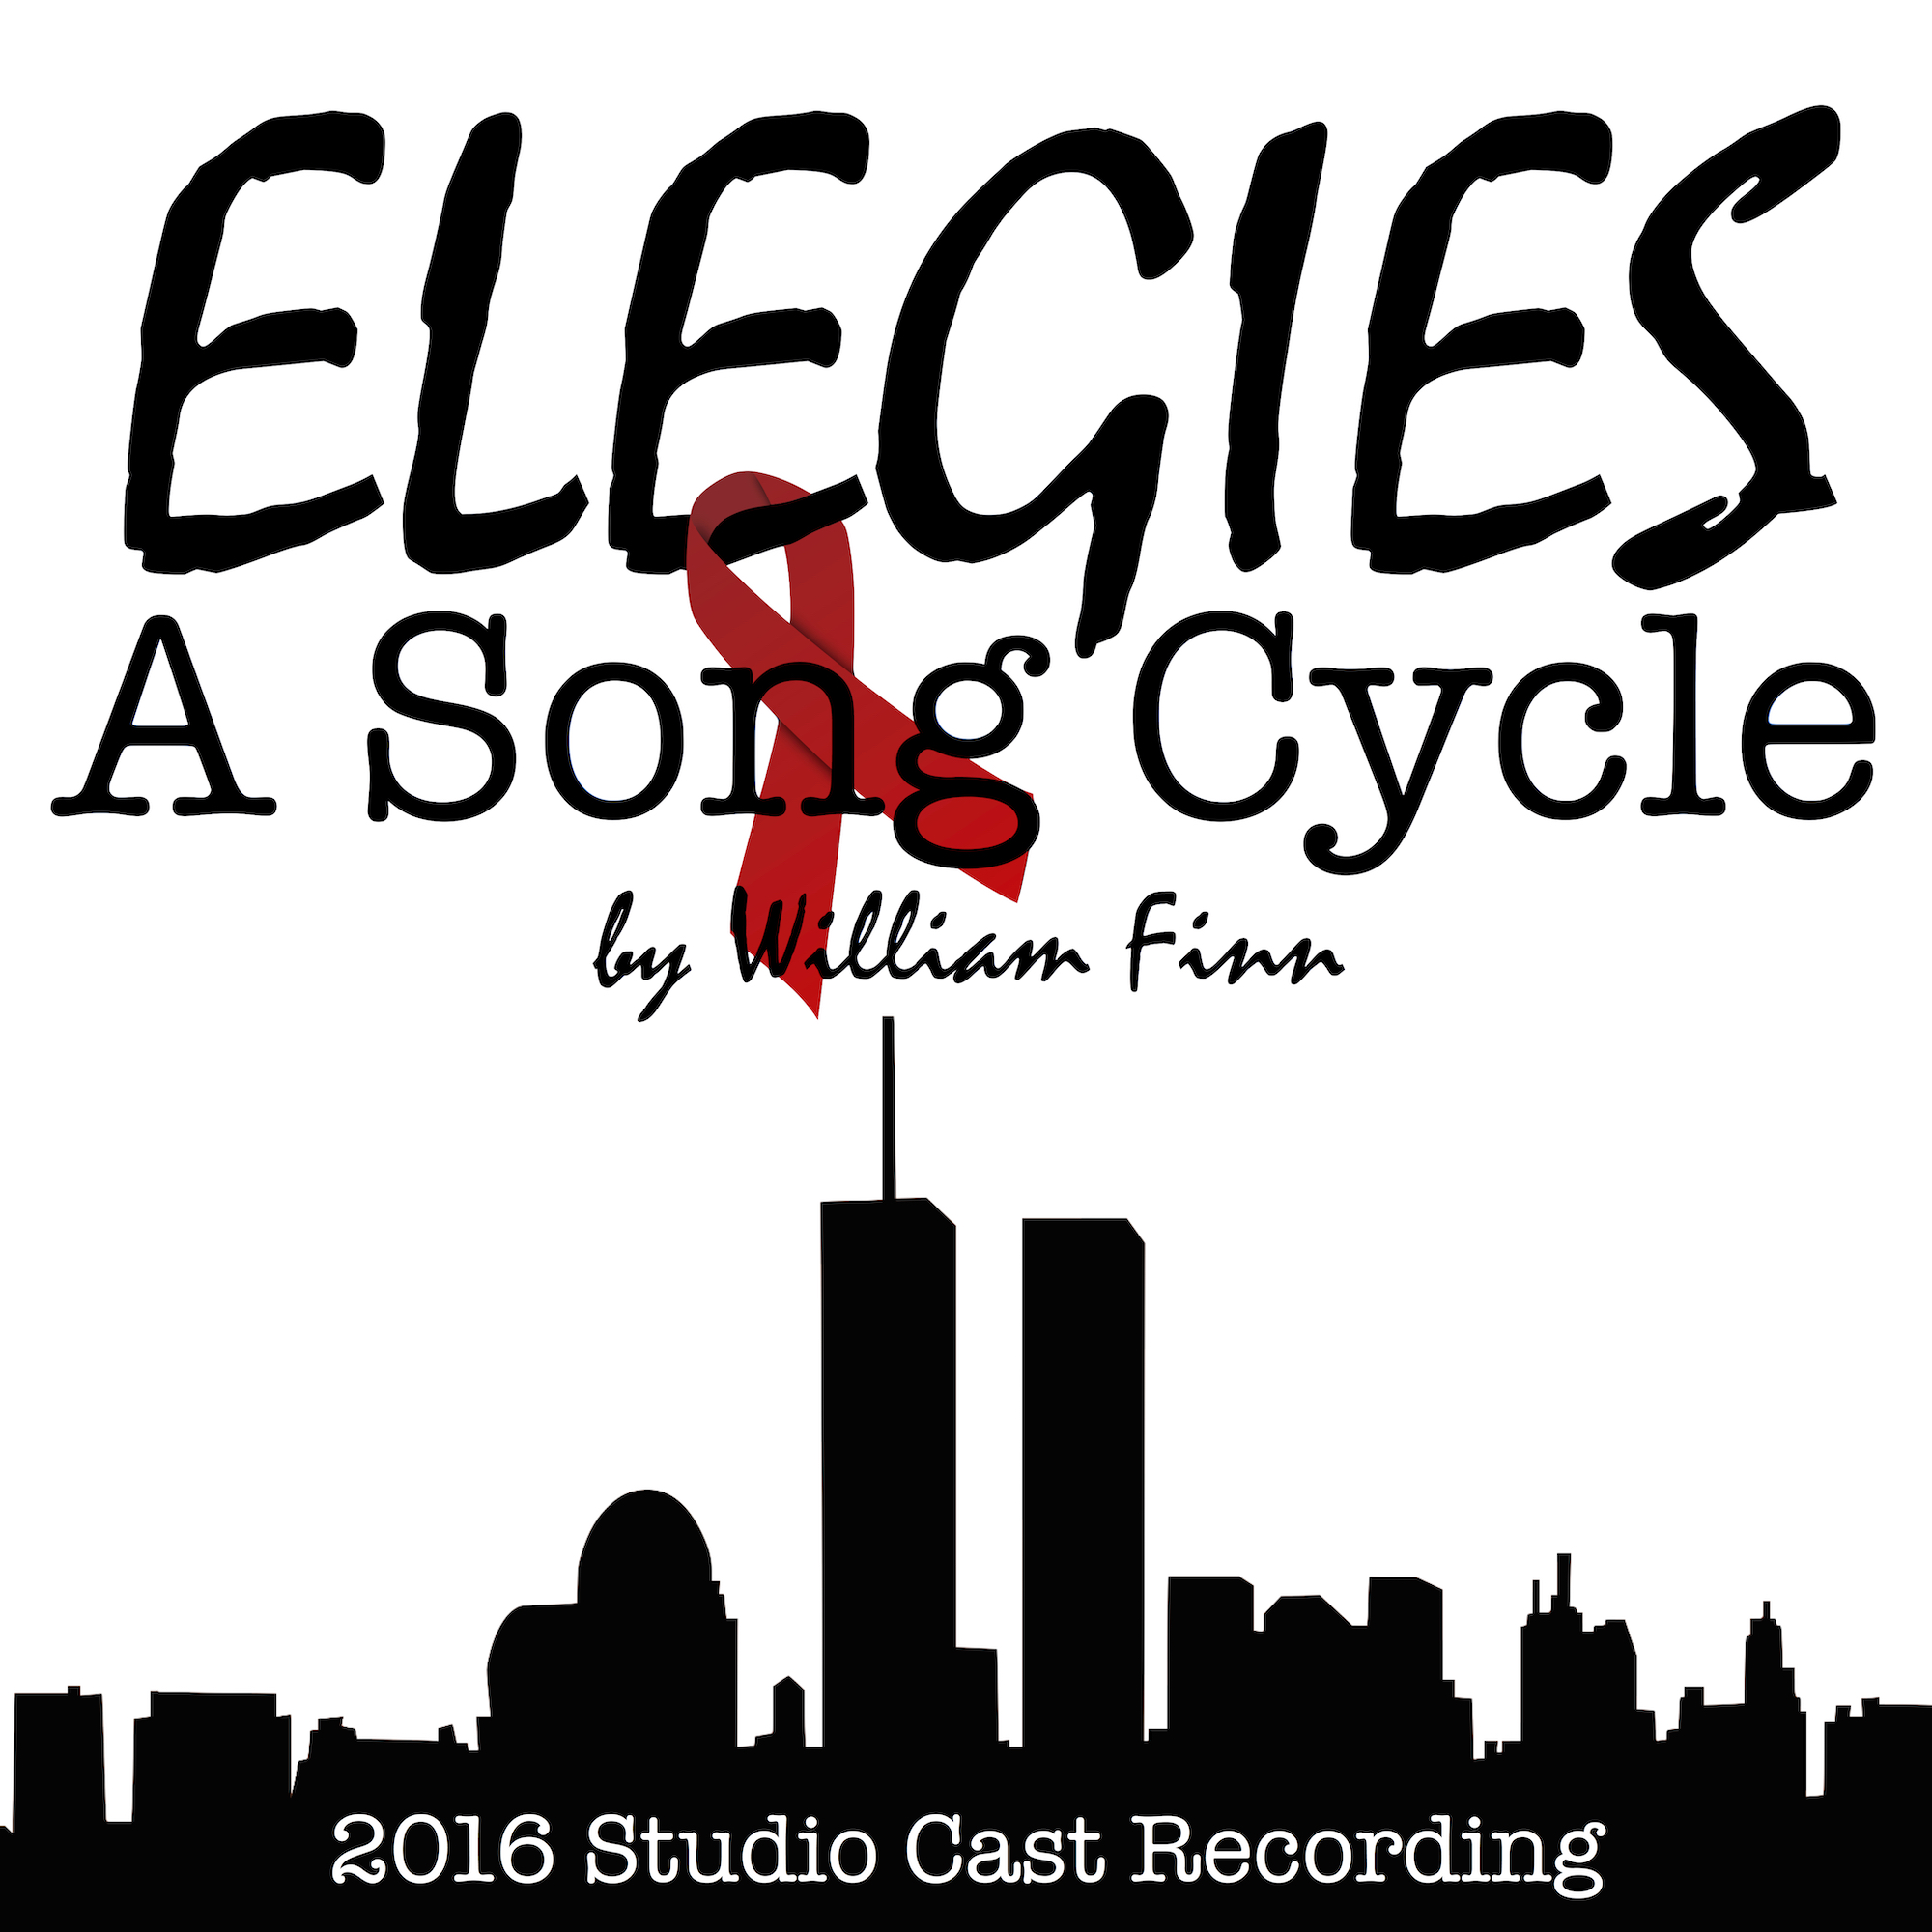 Elegies: A Song Cycle(2016 Studio Cast Recording) - All proceeds gathered from sales of this music will be donated to Broadway Cares/Equity Fights AIDS.